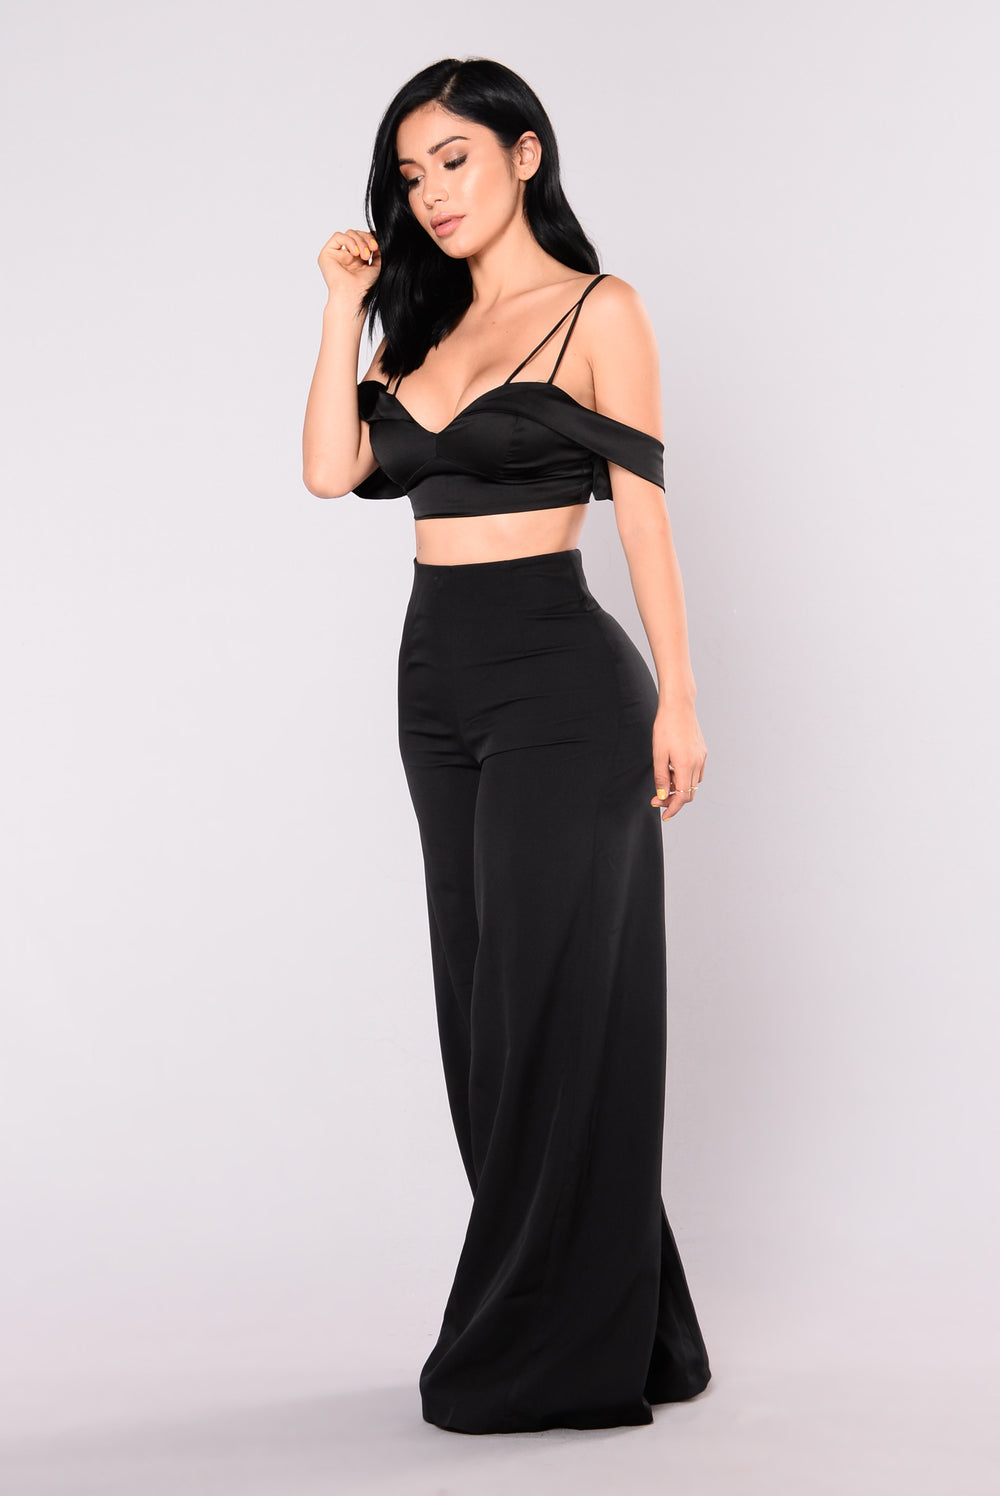 Your Kind Of Girl Crop Top - Black